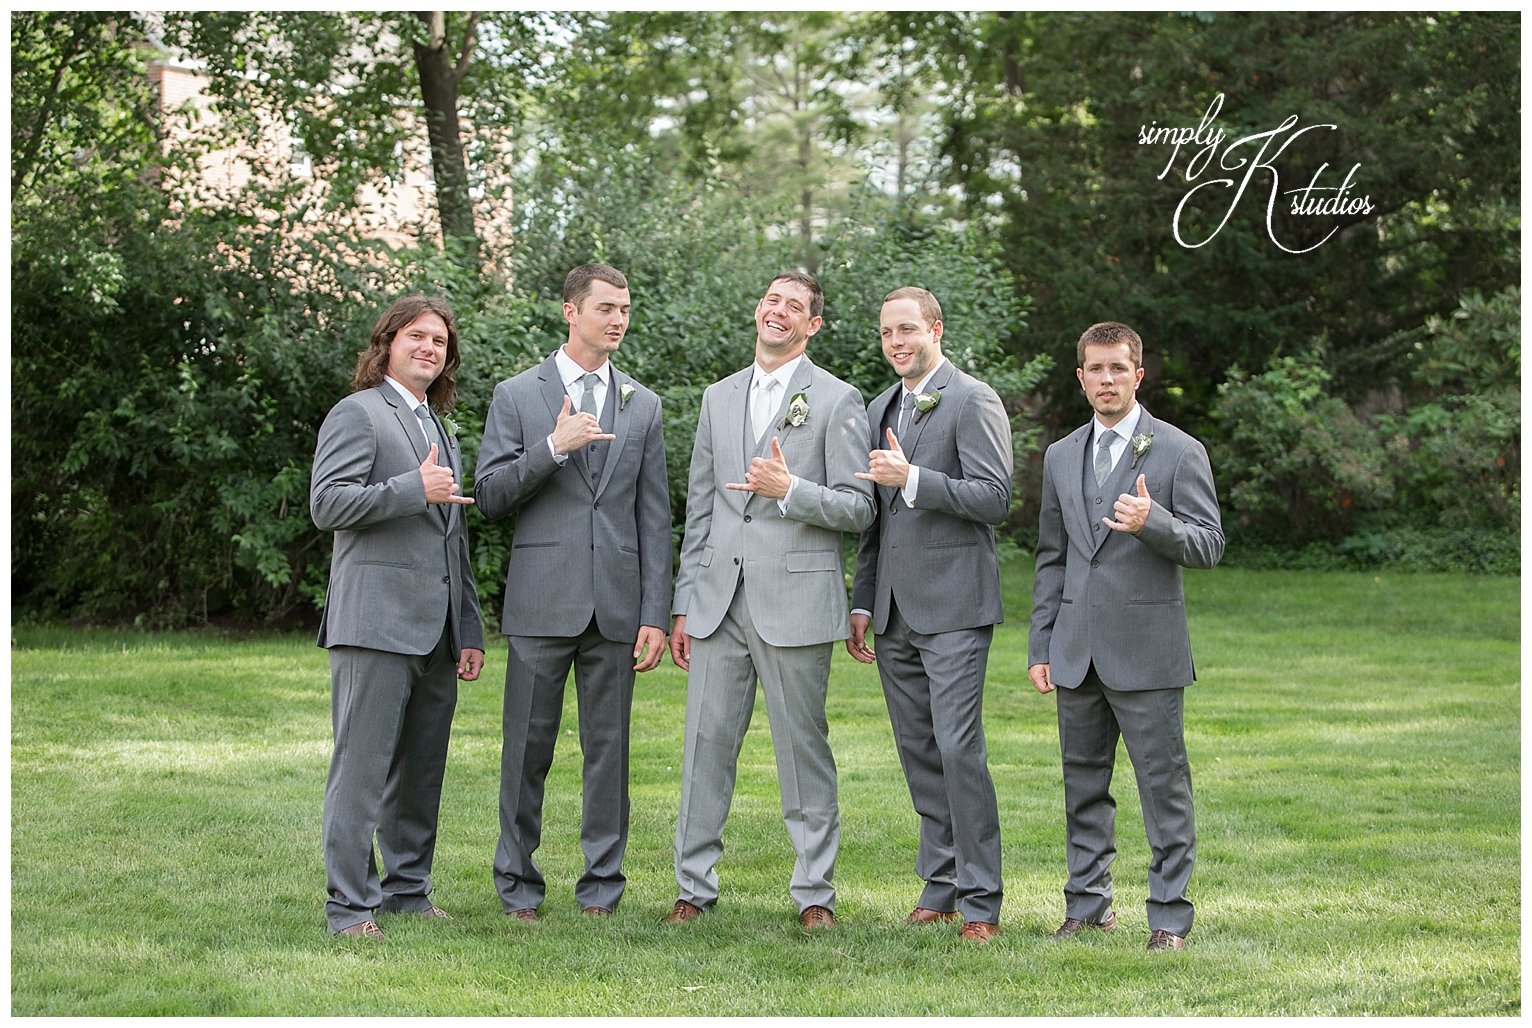 Gray Suits for a Wedding.jpg